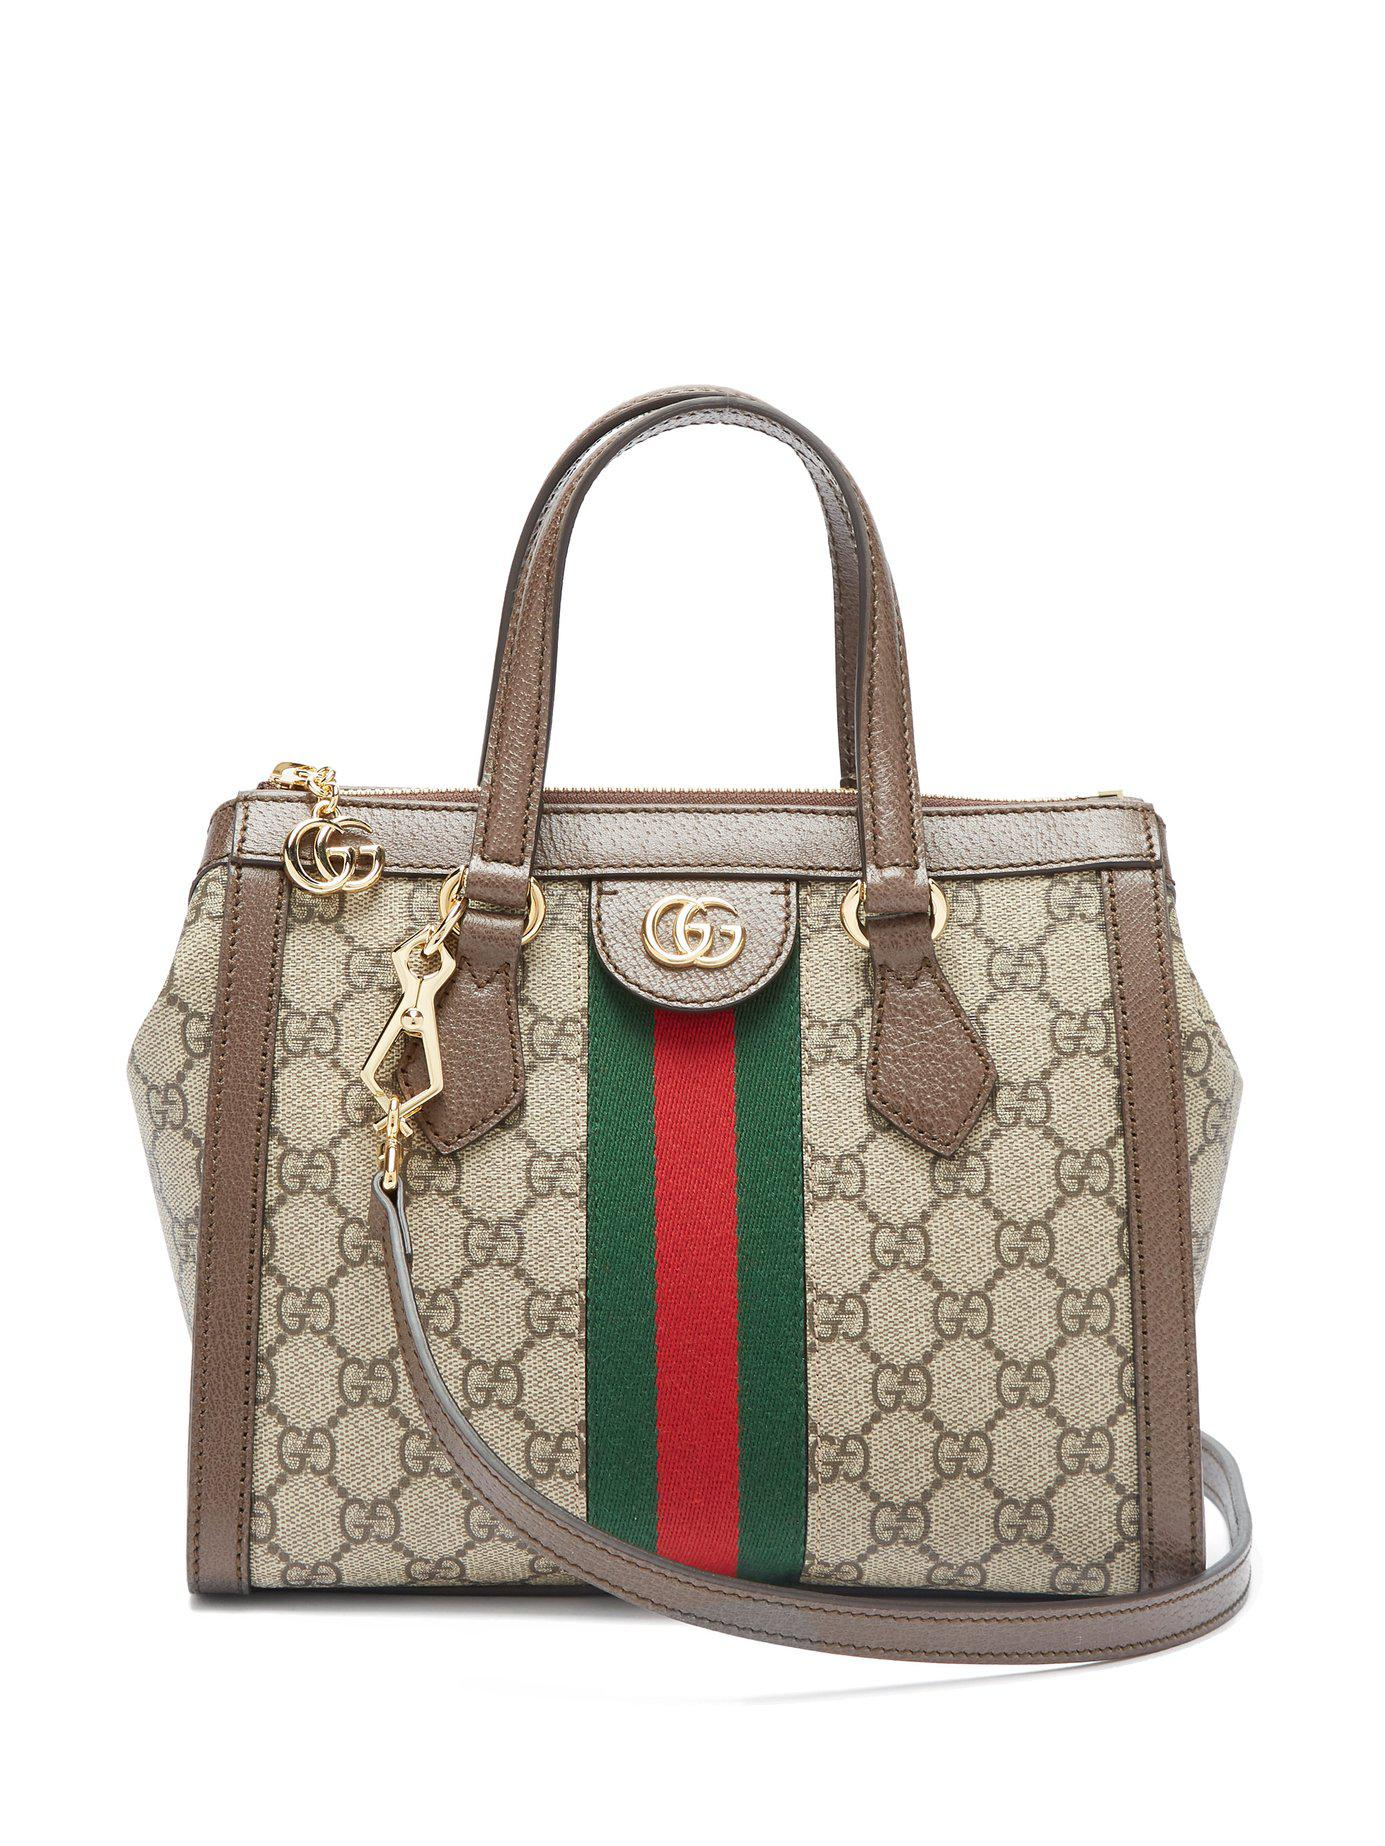 a09627df94b73 Lyst - Gucci Ophidia Gg Supreme Canvas Cross Body Bag in Gray